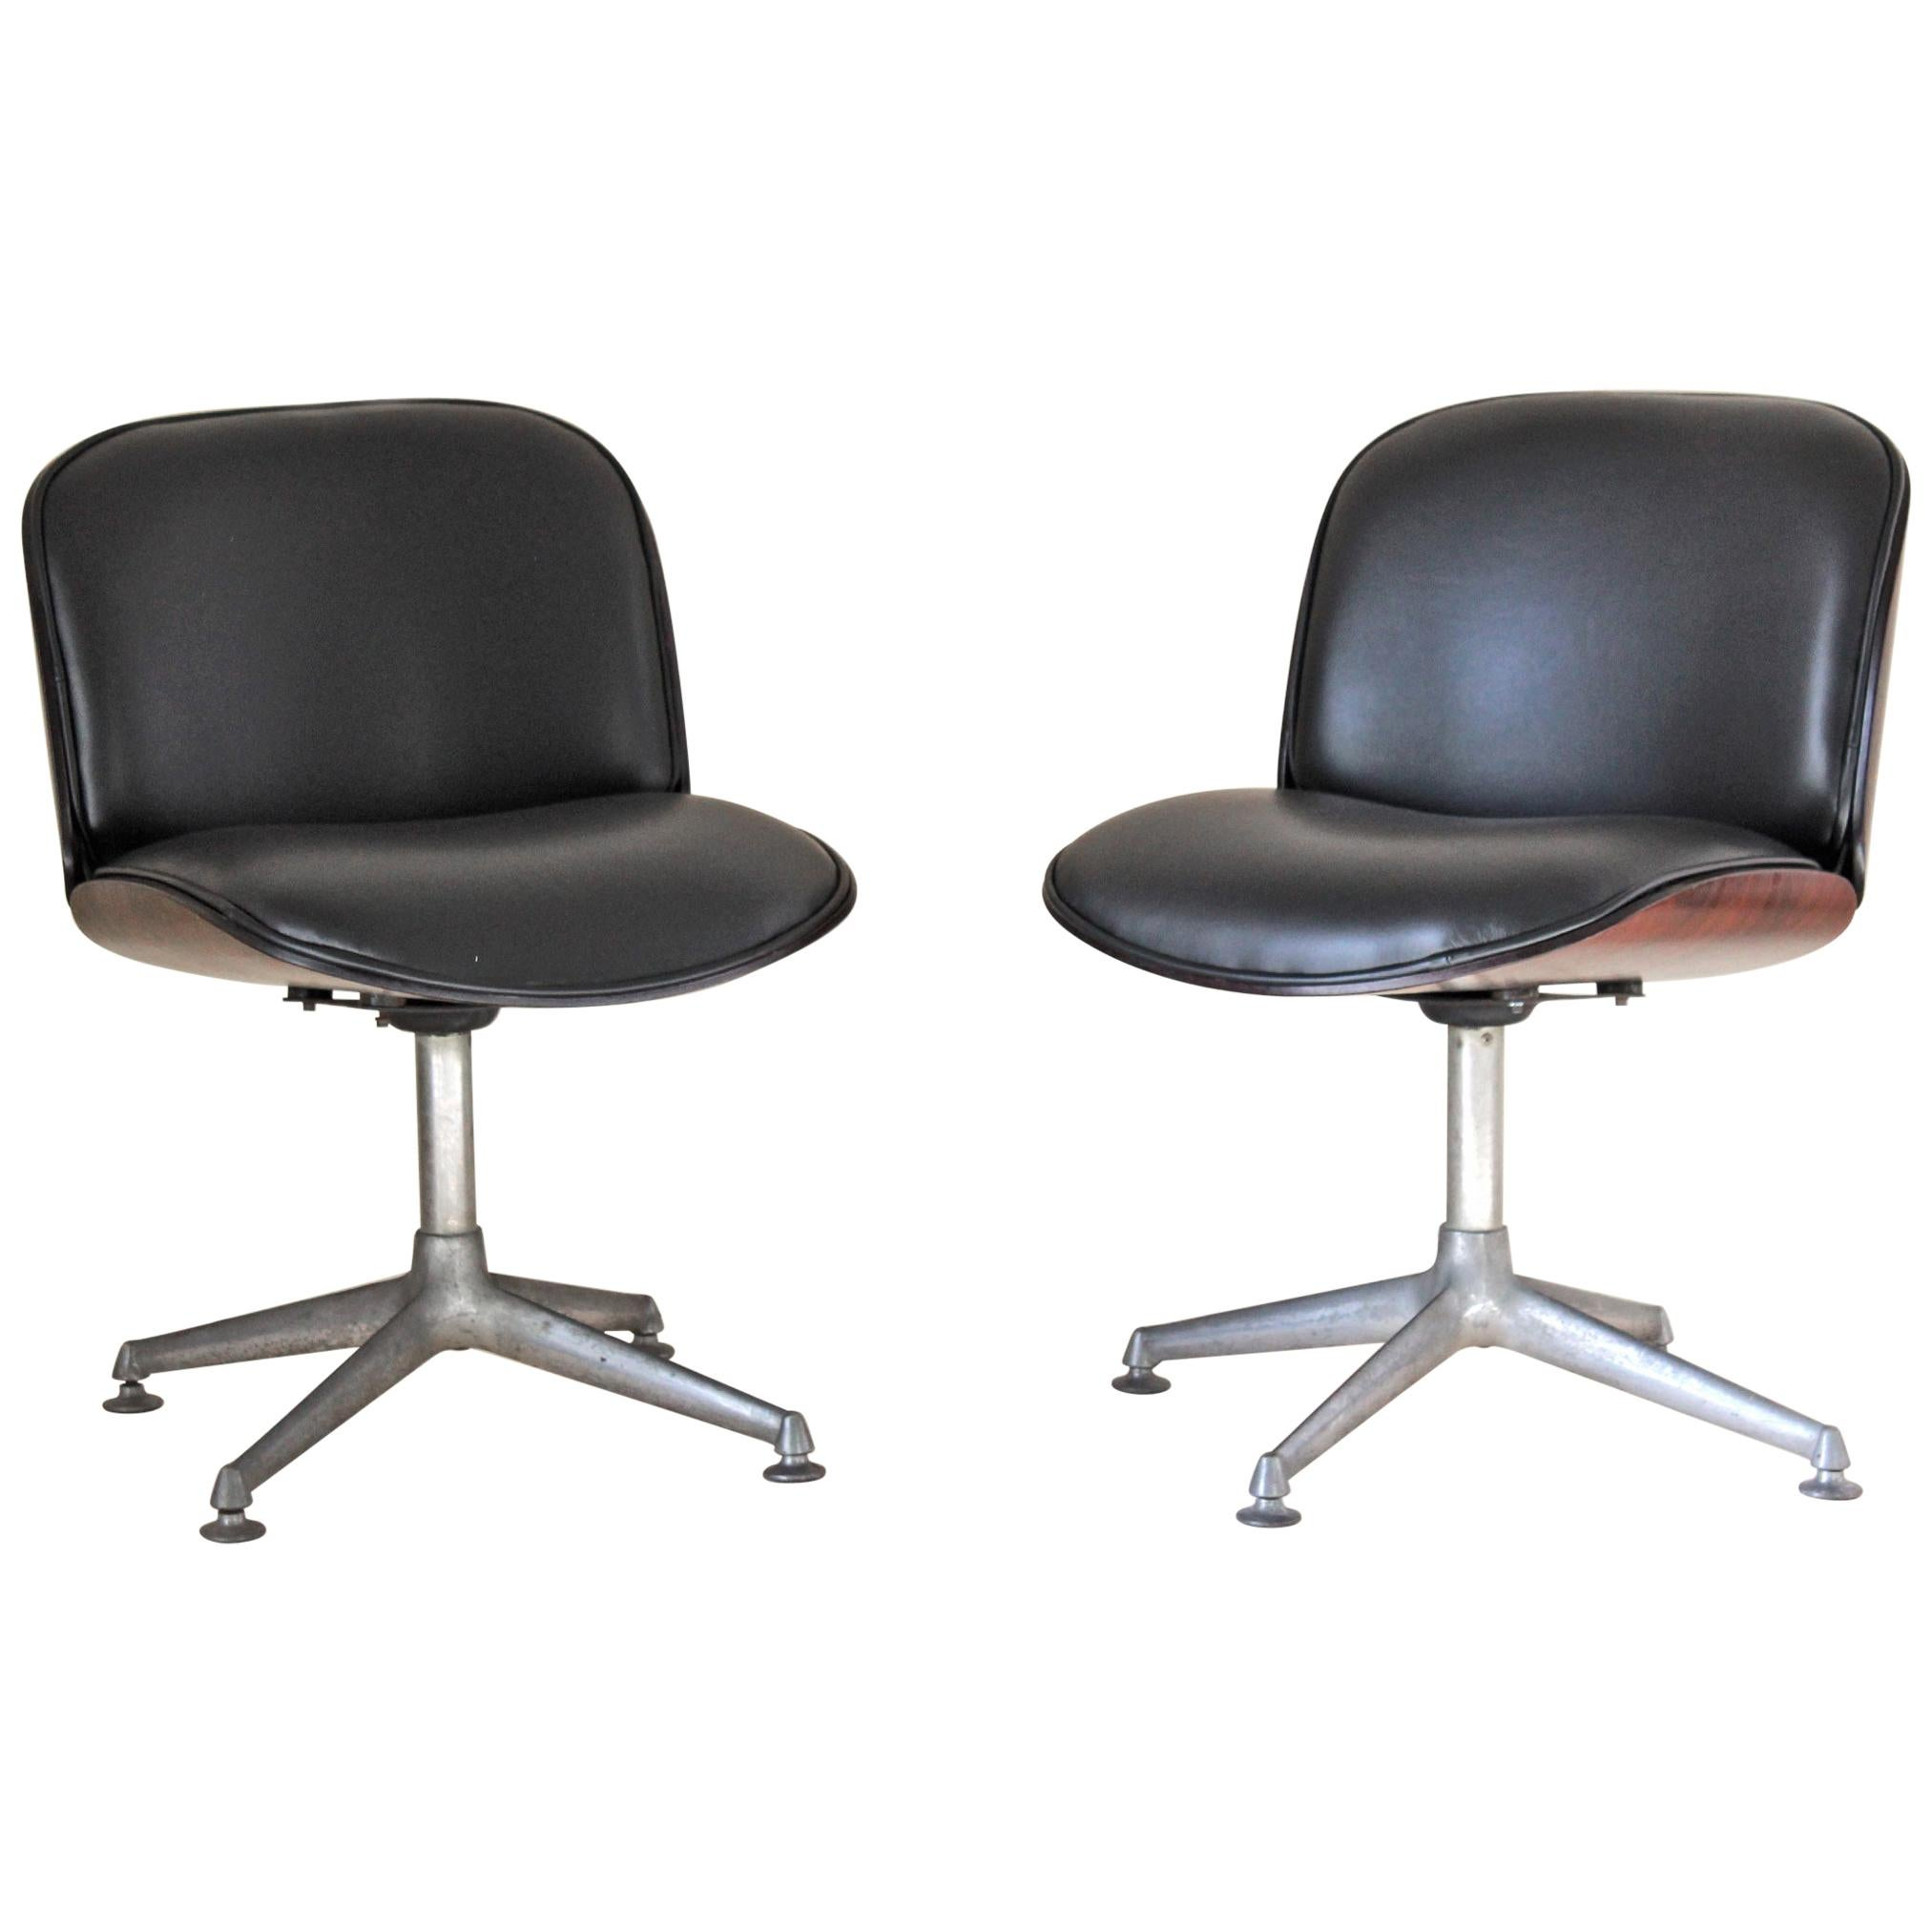 1960s Desk vintage Armchairs,  Ico Parisi for Mim Roma Set of Two